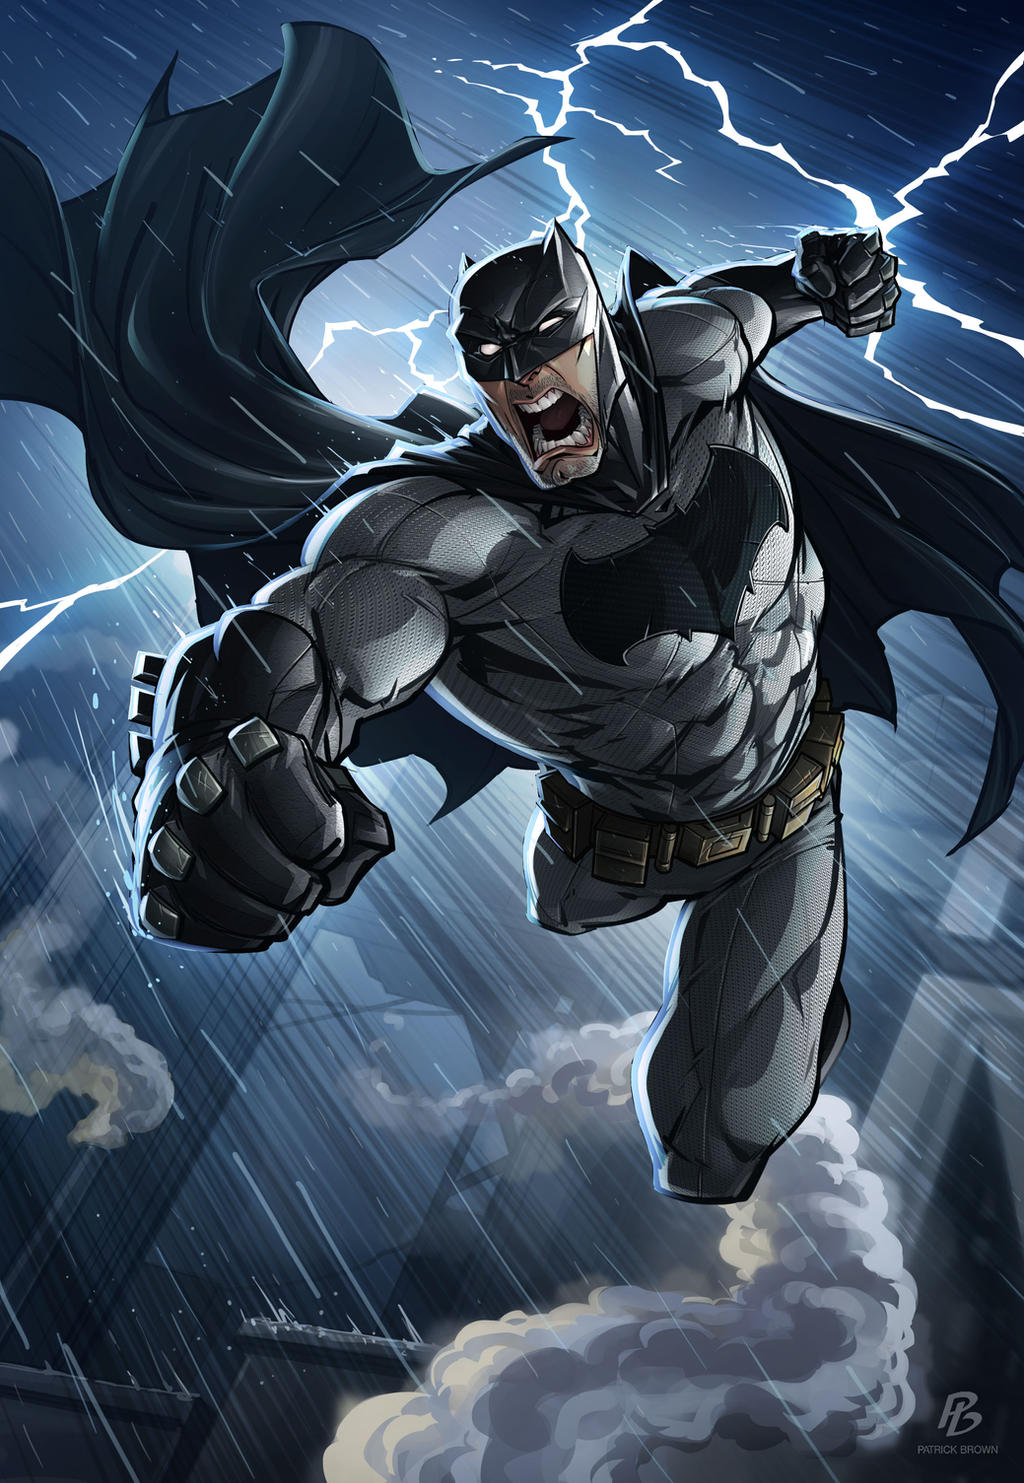 compare and contrast between batman and superman Spiderman vs superman super heroes are loved by almost everyone spiderman and superman are two of the most popular superheroes known to man everyone has seen the movies, the television shows and read the comic books about them.